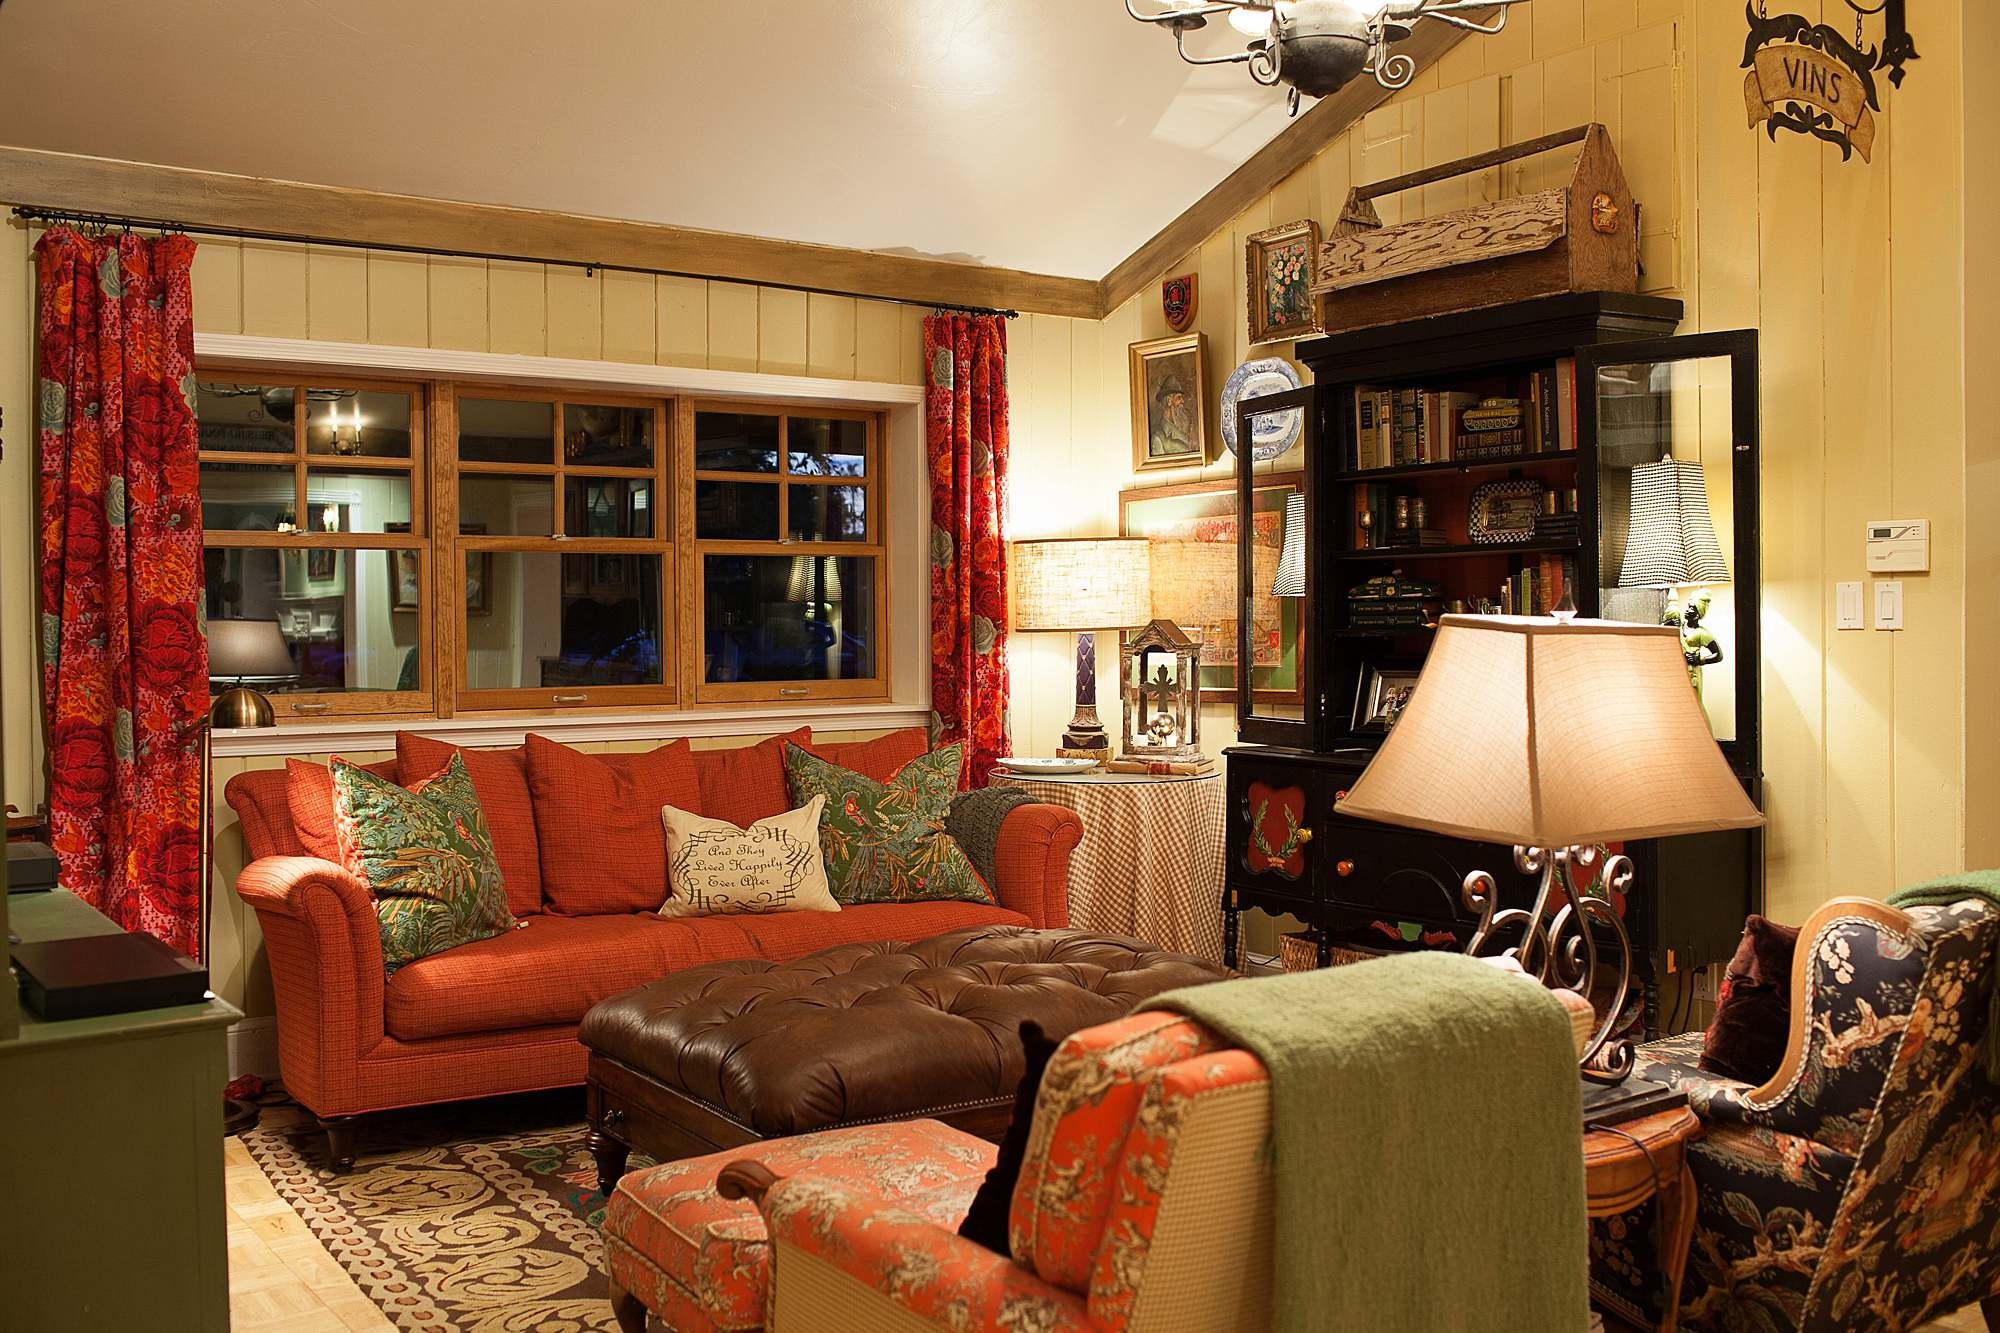 boho farm and home cottage English style cottage lived in feel, come see the home tour